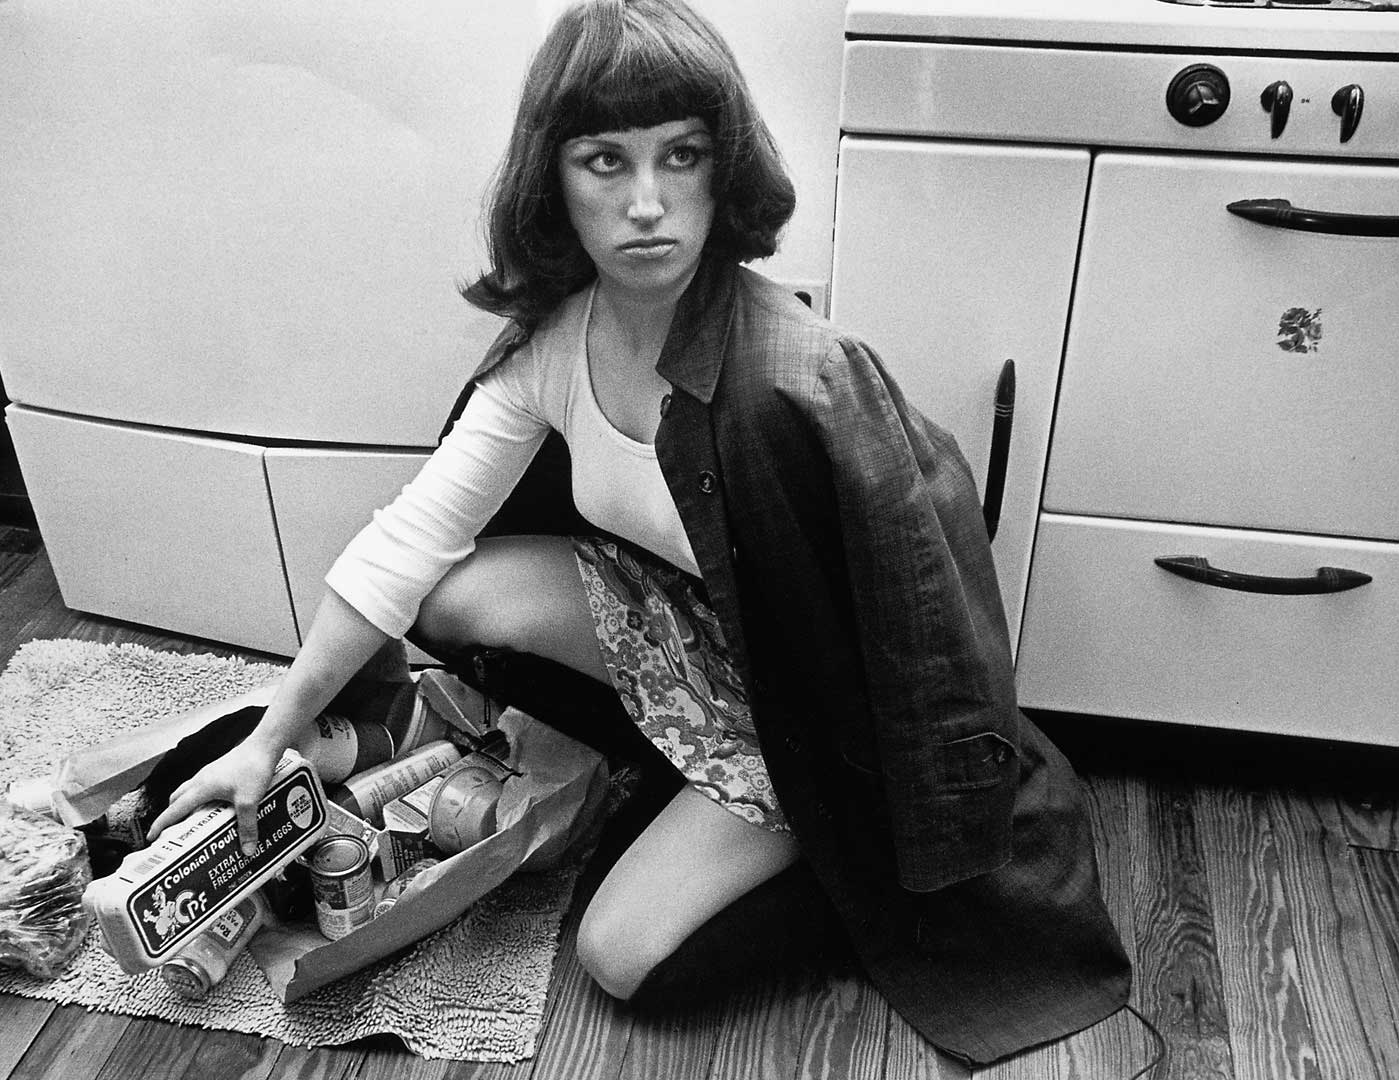 05-cindy-sherman-25i3oj1